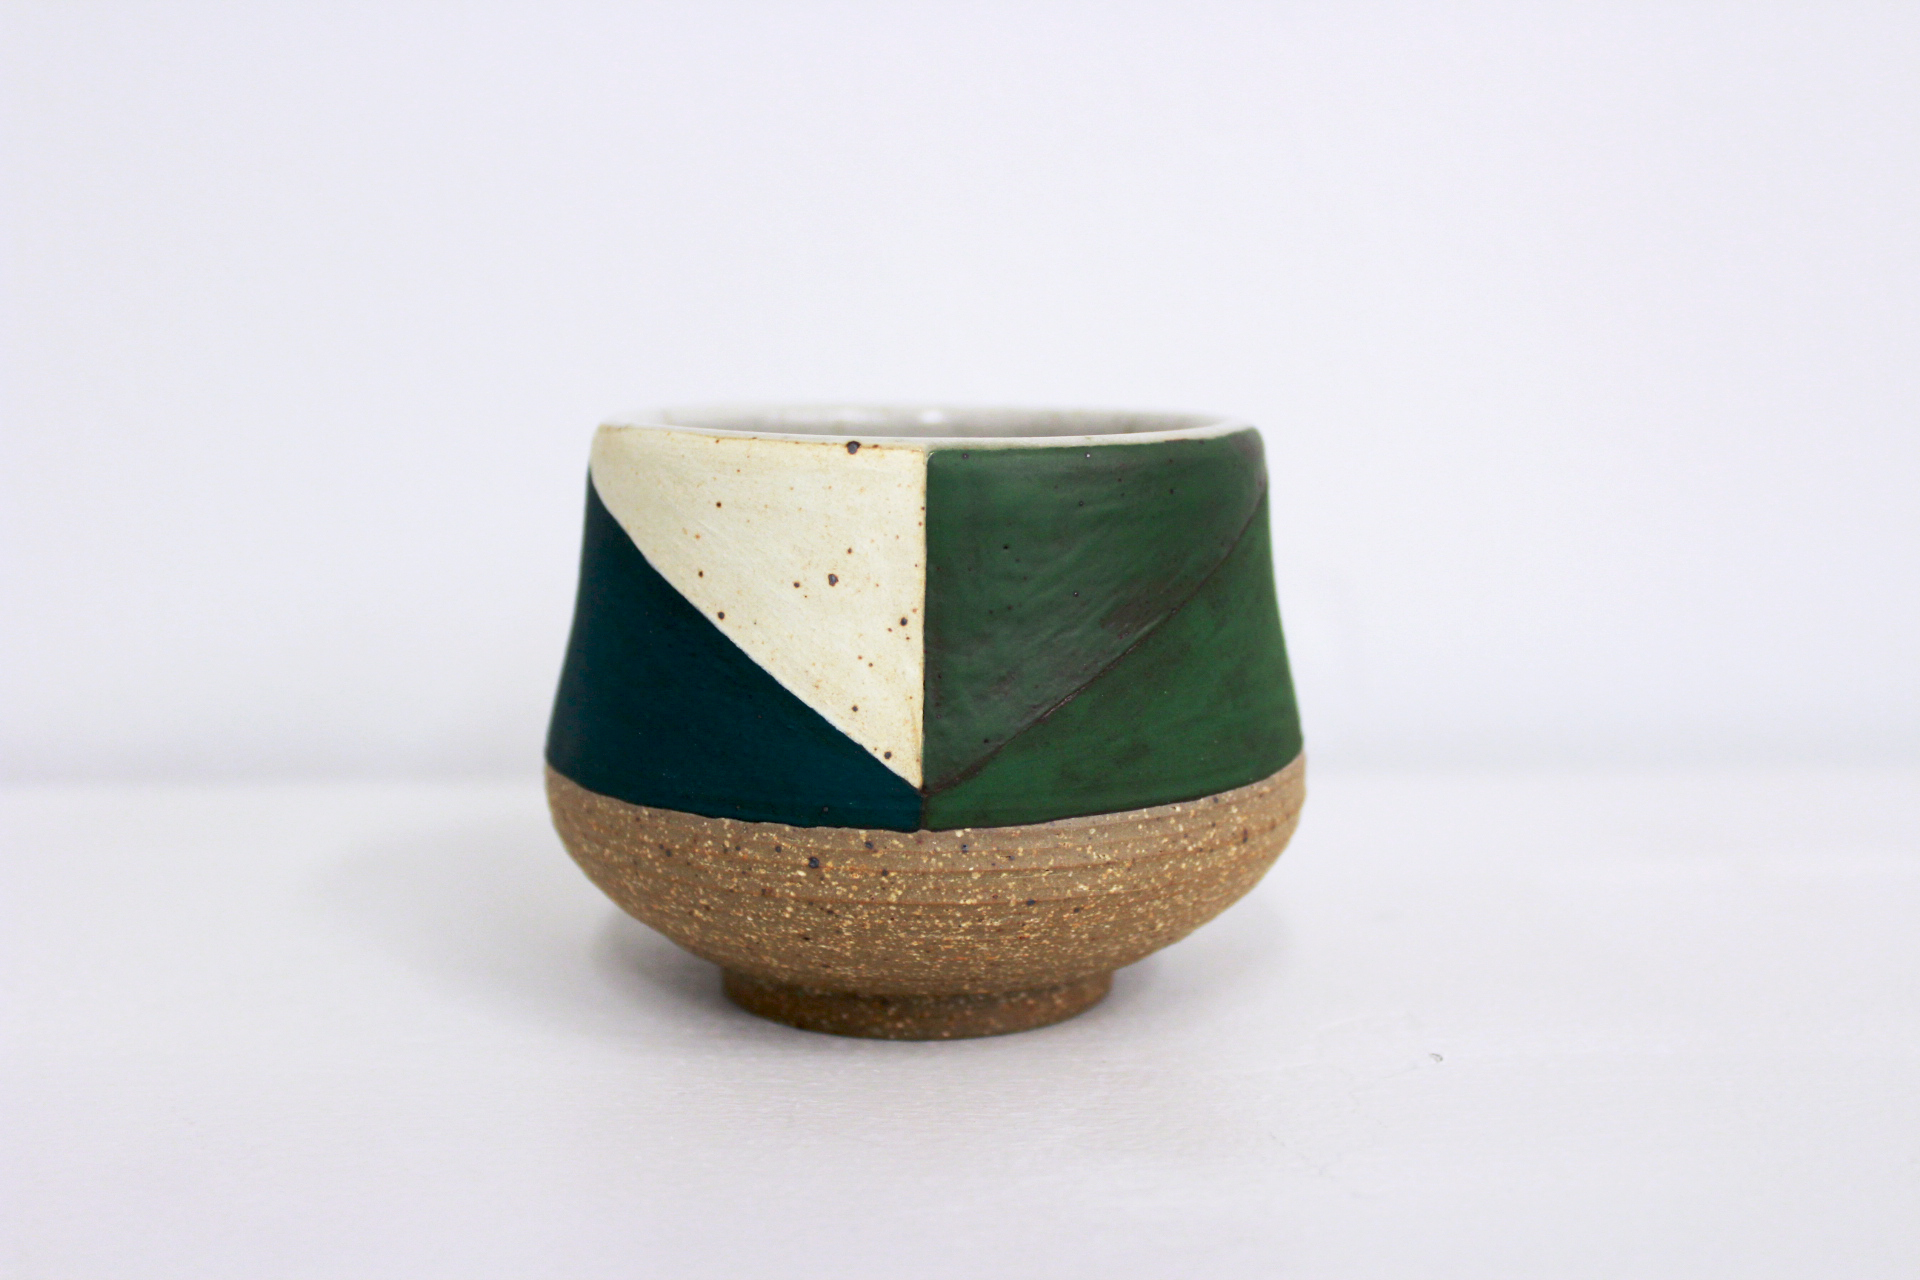 Path Cup      Peace, comfort, calming, still, morning light, nature  Sustainable, enduring, real objects, real materials, sturdy, everyday use  Slow life Aesthetic, handmade heirloom, intentionally and purposefully made  Drinking, community, friends  Quality of life